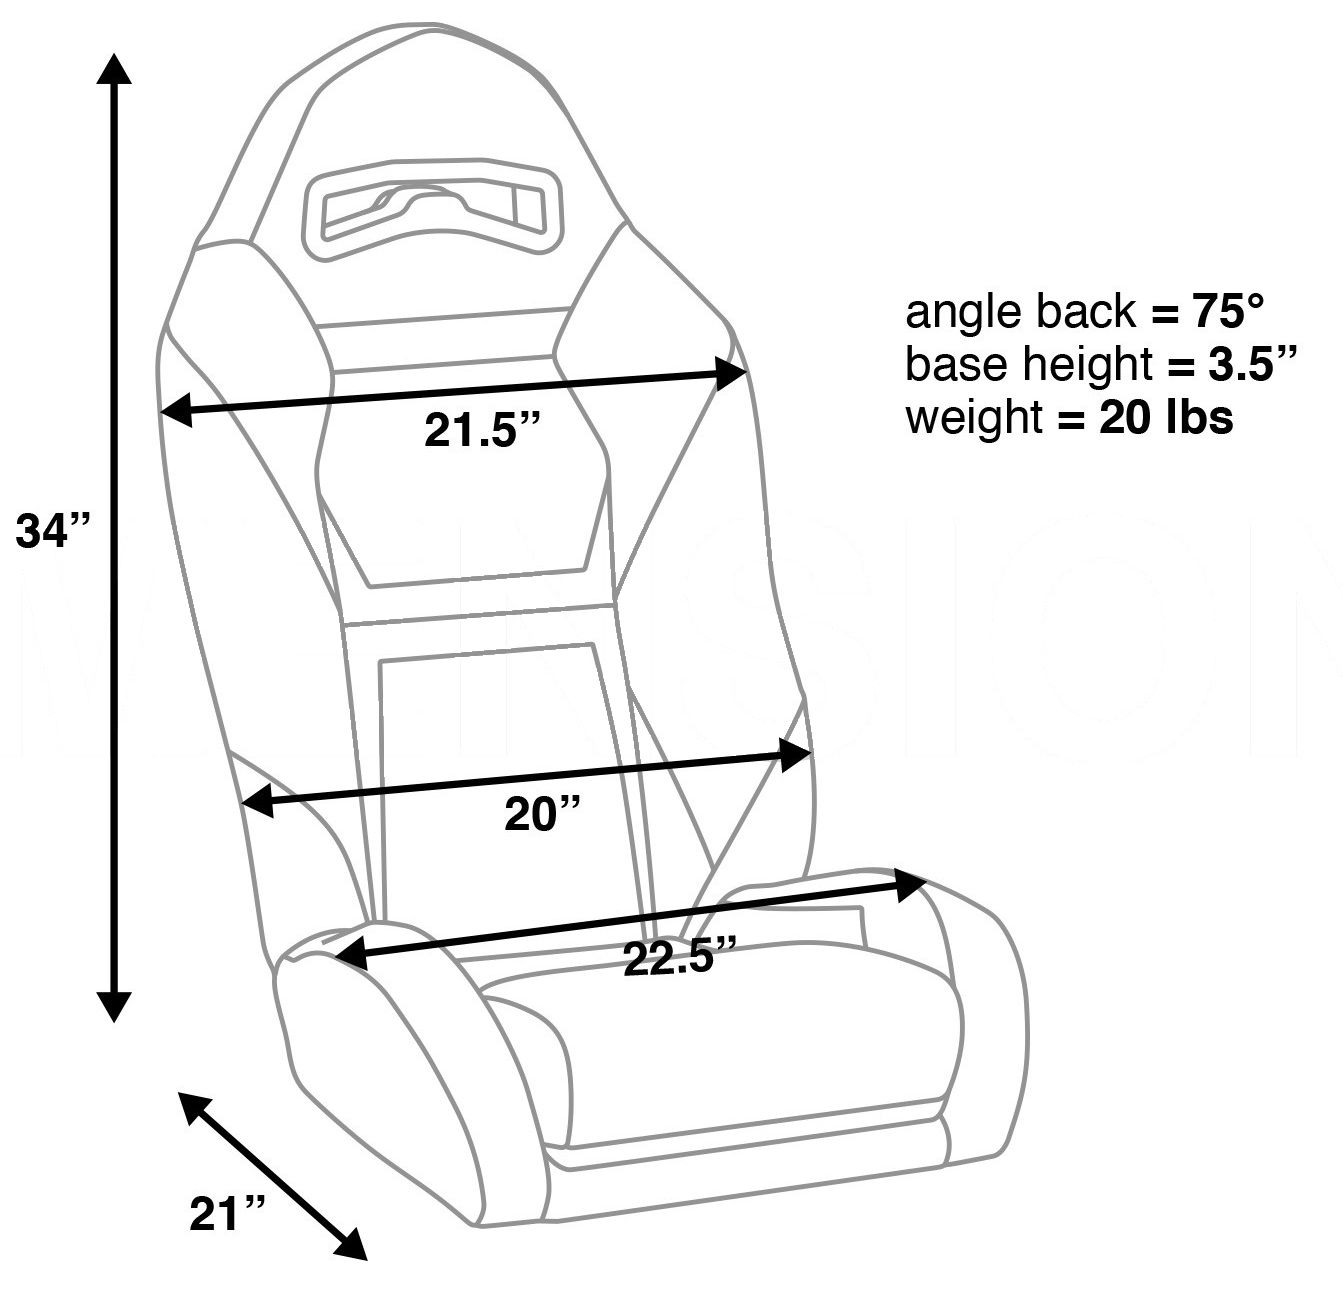 Corbeau Apex Side-by-Side RZR Seat Dimensions